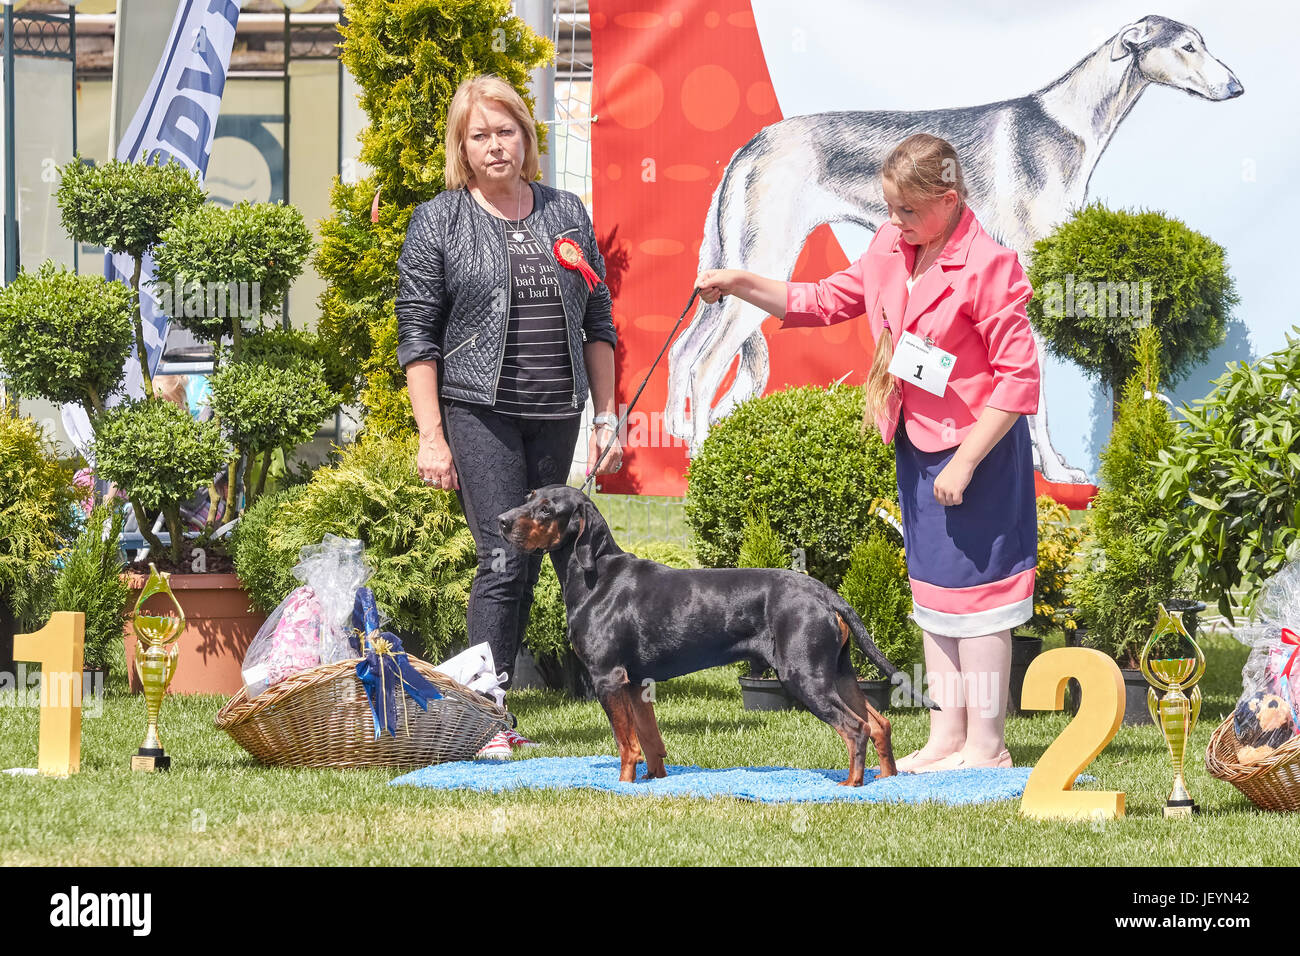 Szczecin, Poland - June 10, 2017: Winner of a junior category with a judge at the 31st West Pomeranian National - Stock Image